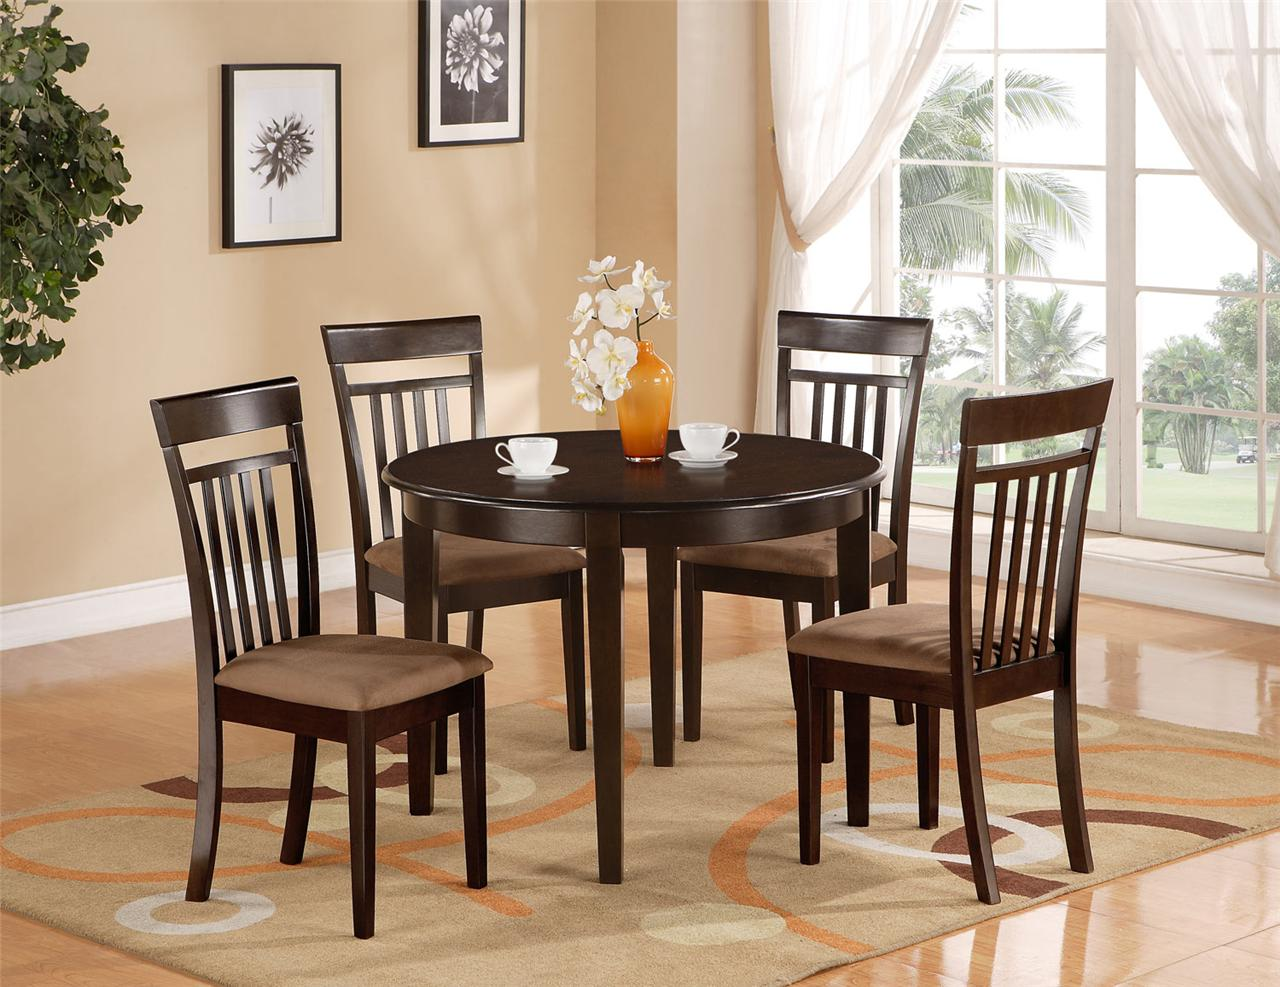 Stylish round kitchen table and chairs with brick wall and flower vase on round kitchen table and chairs